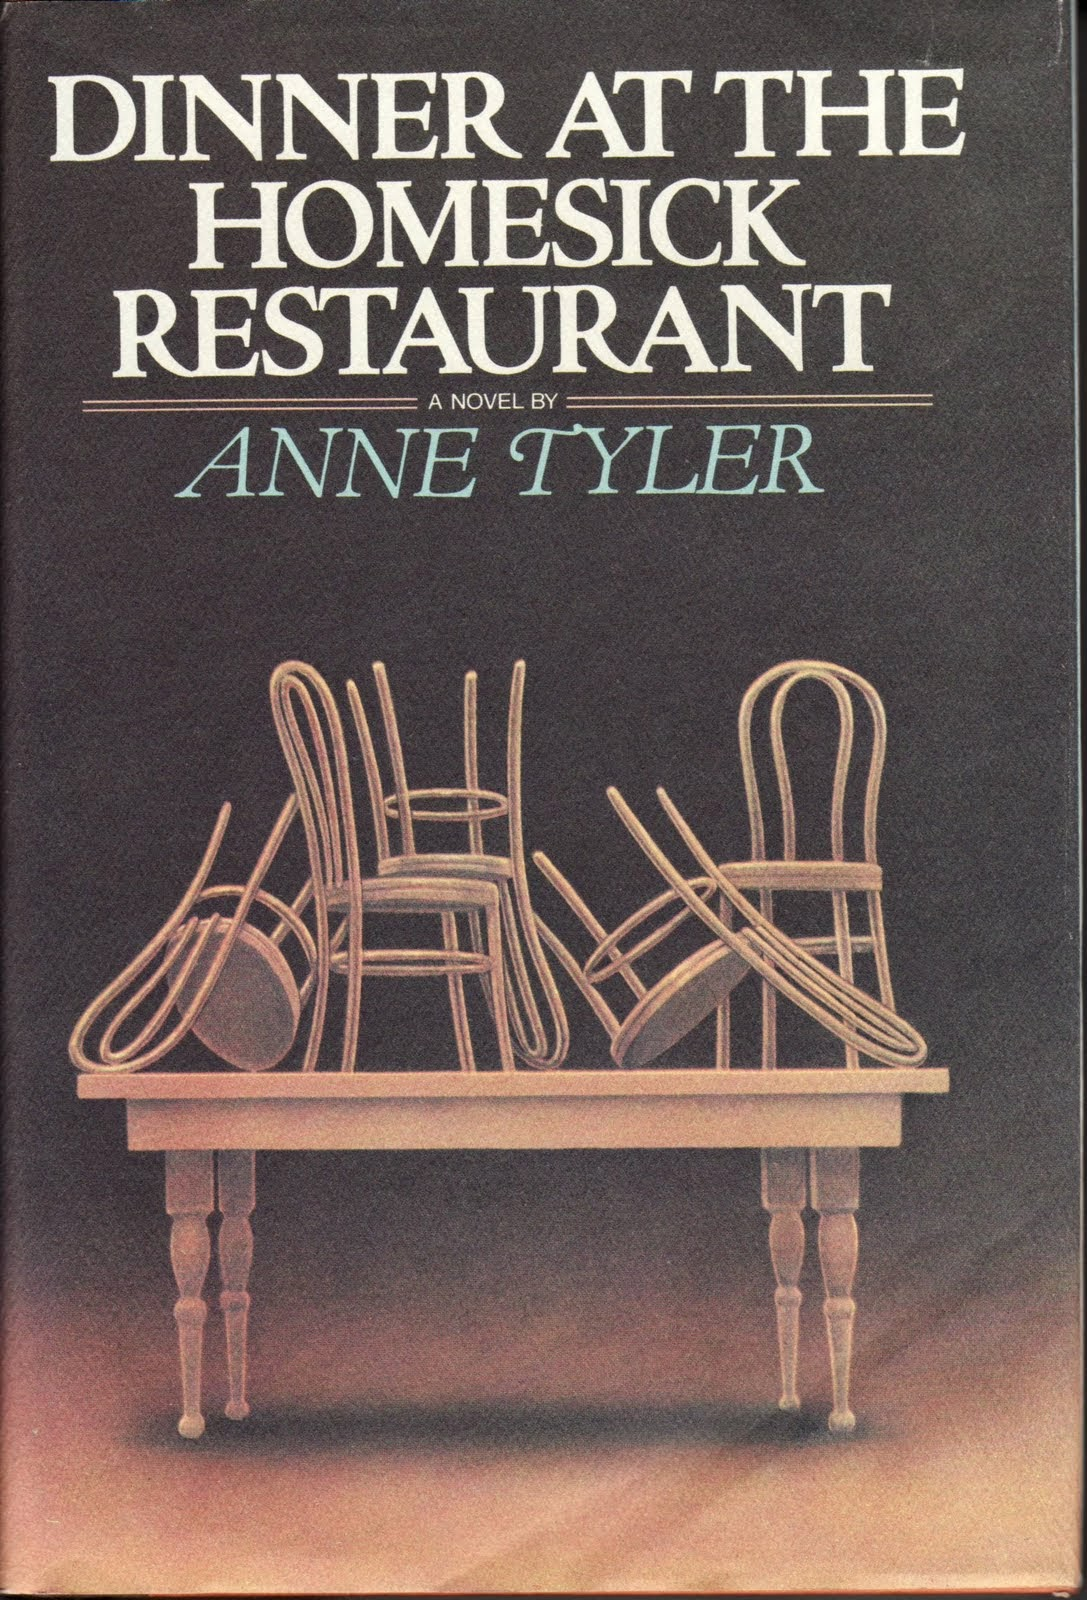 anne tyler books